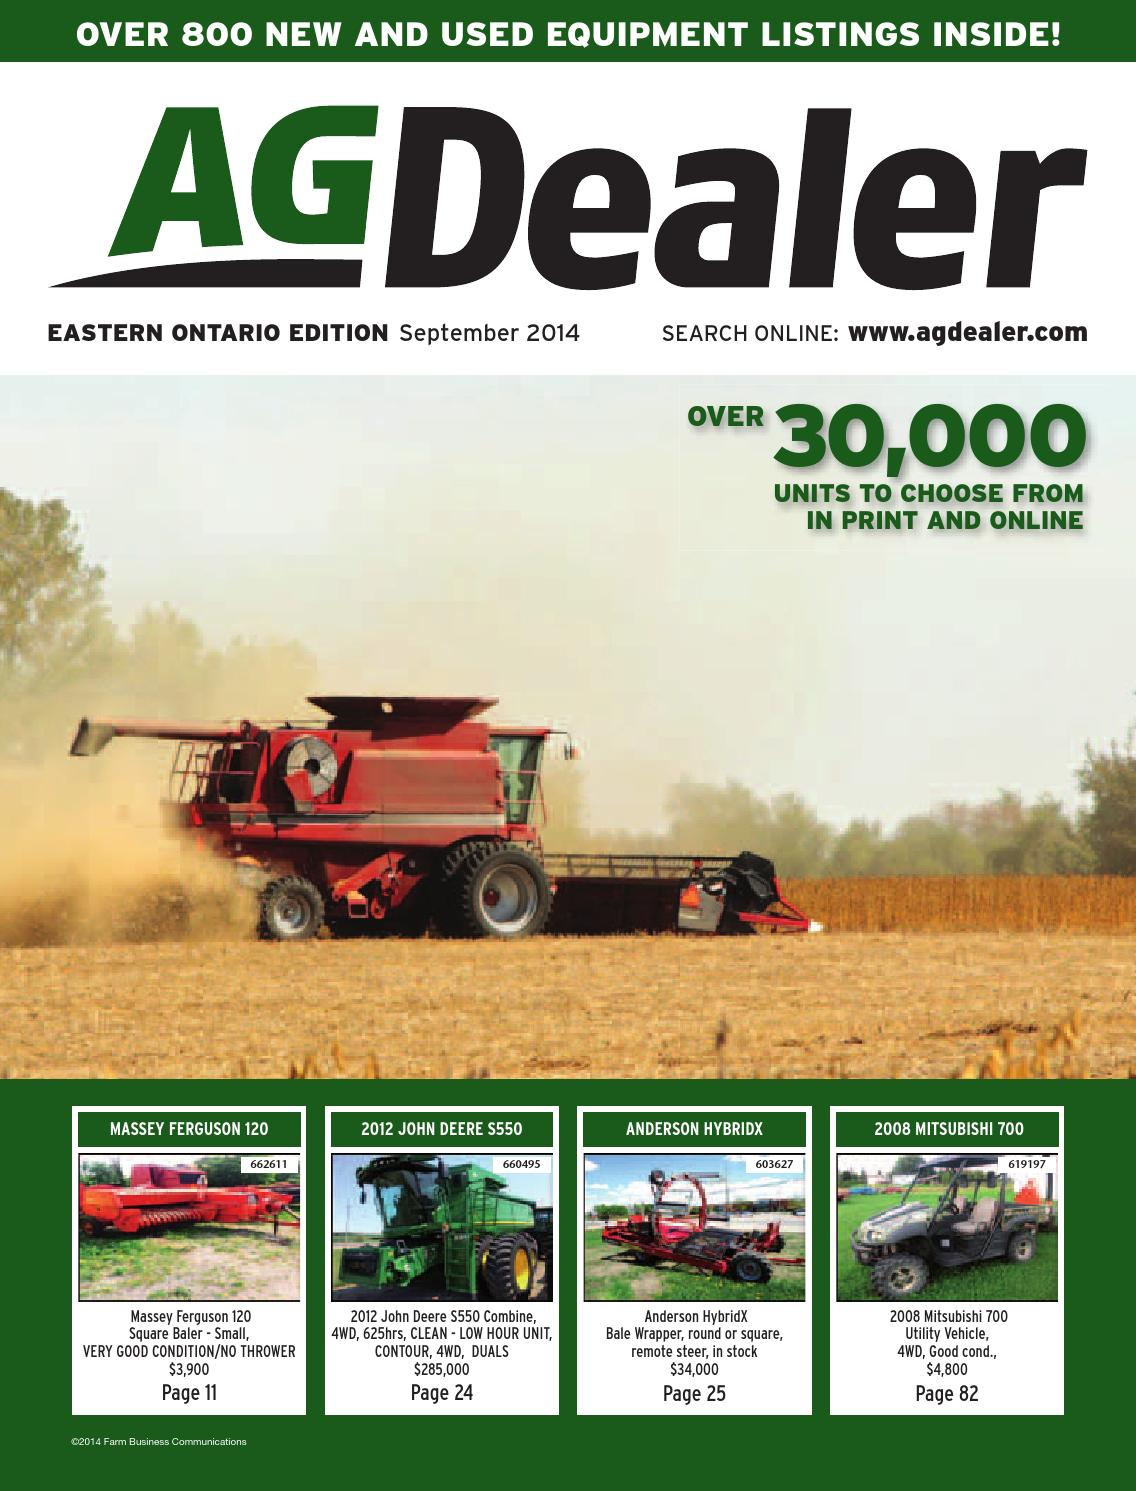 AGDealer Eastern Ontario Edition, September 2014 by Farm Business  Communications - issuu